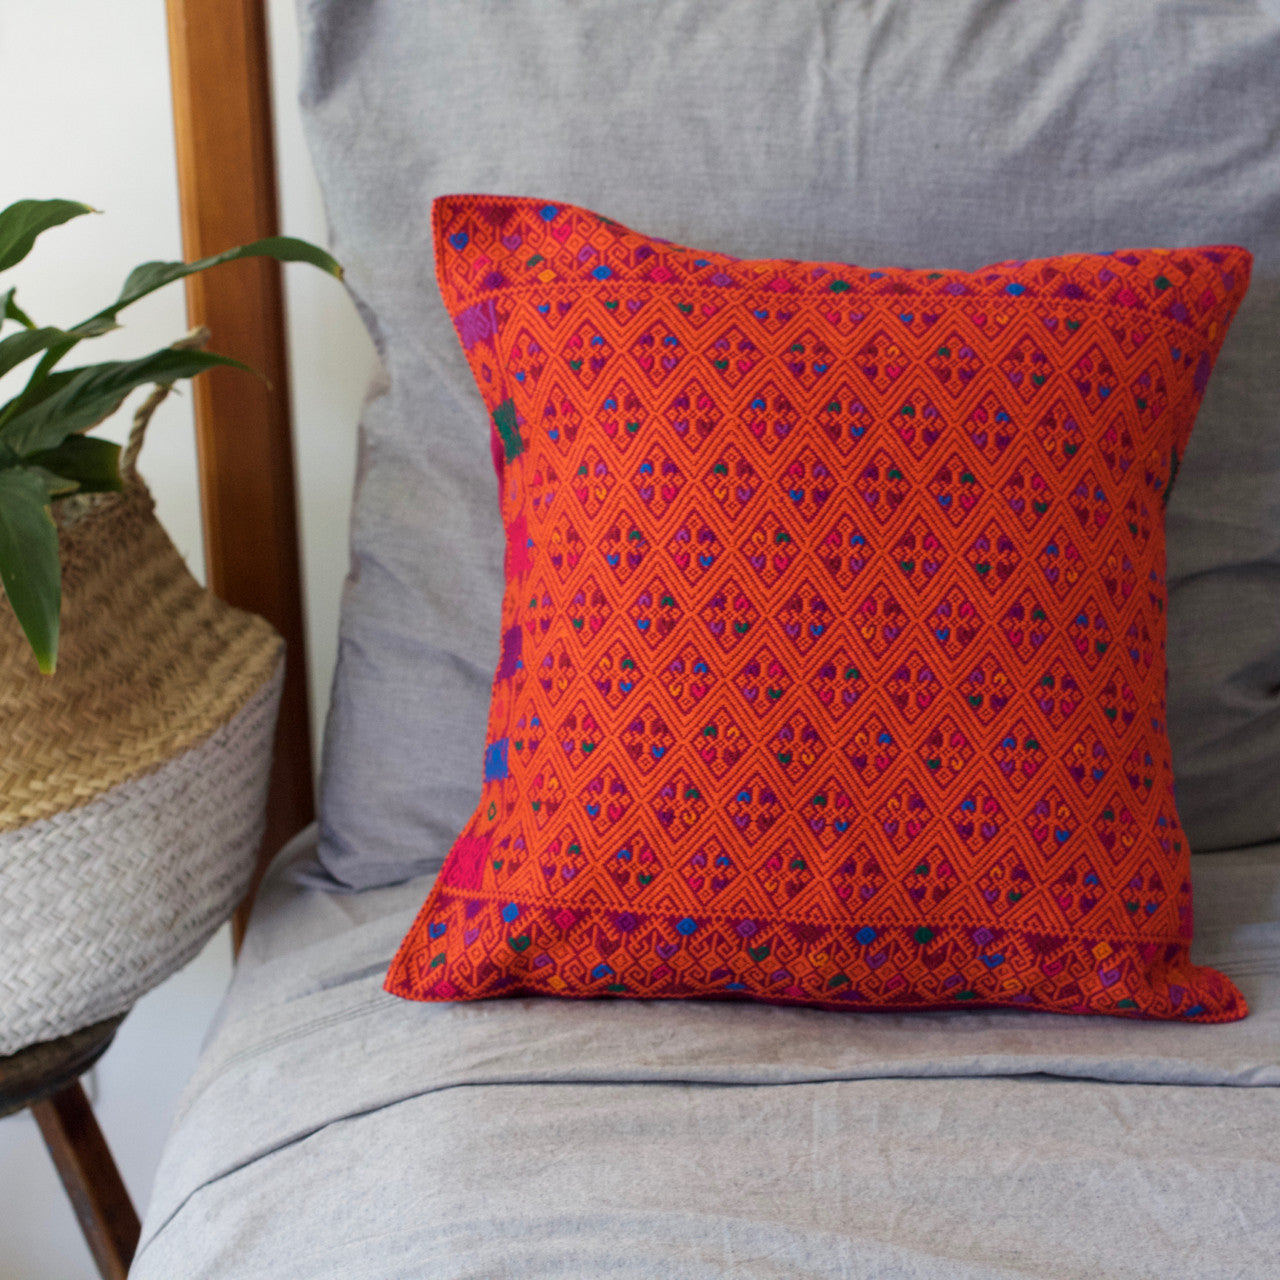 Diamante Cushion 03  Cushion Orange - Cielo Collective handmade Mexico Guatemala